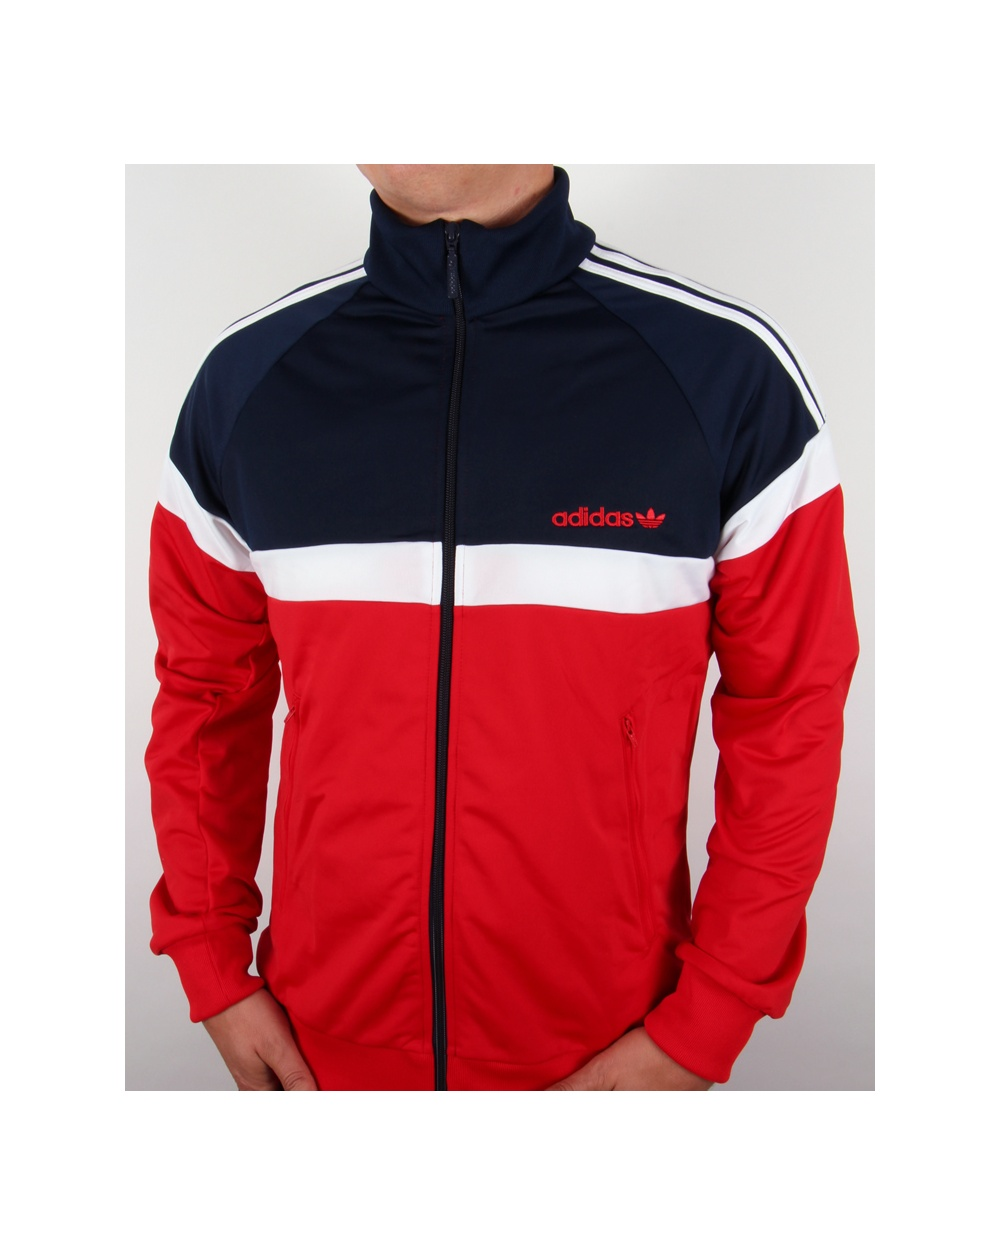 Adidas Originals Itasca Track Top Red Navy Jacket Tracksuit Mens